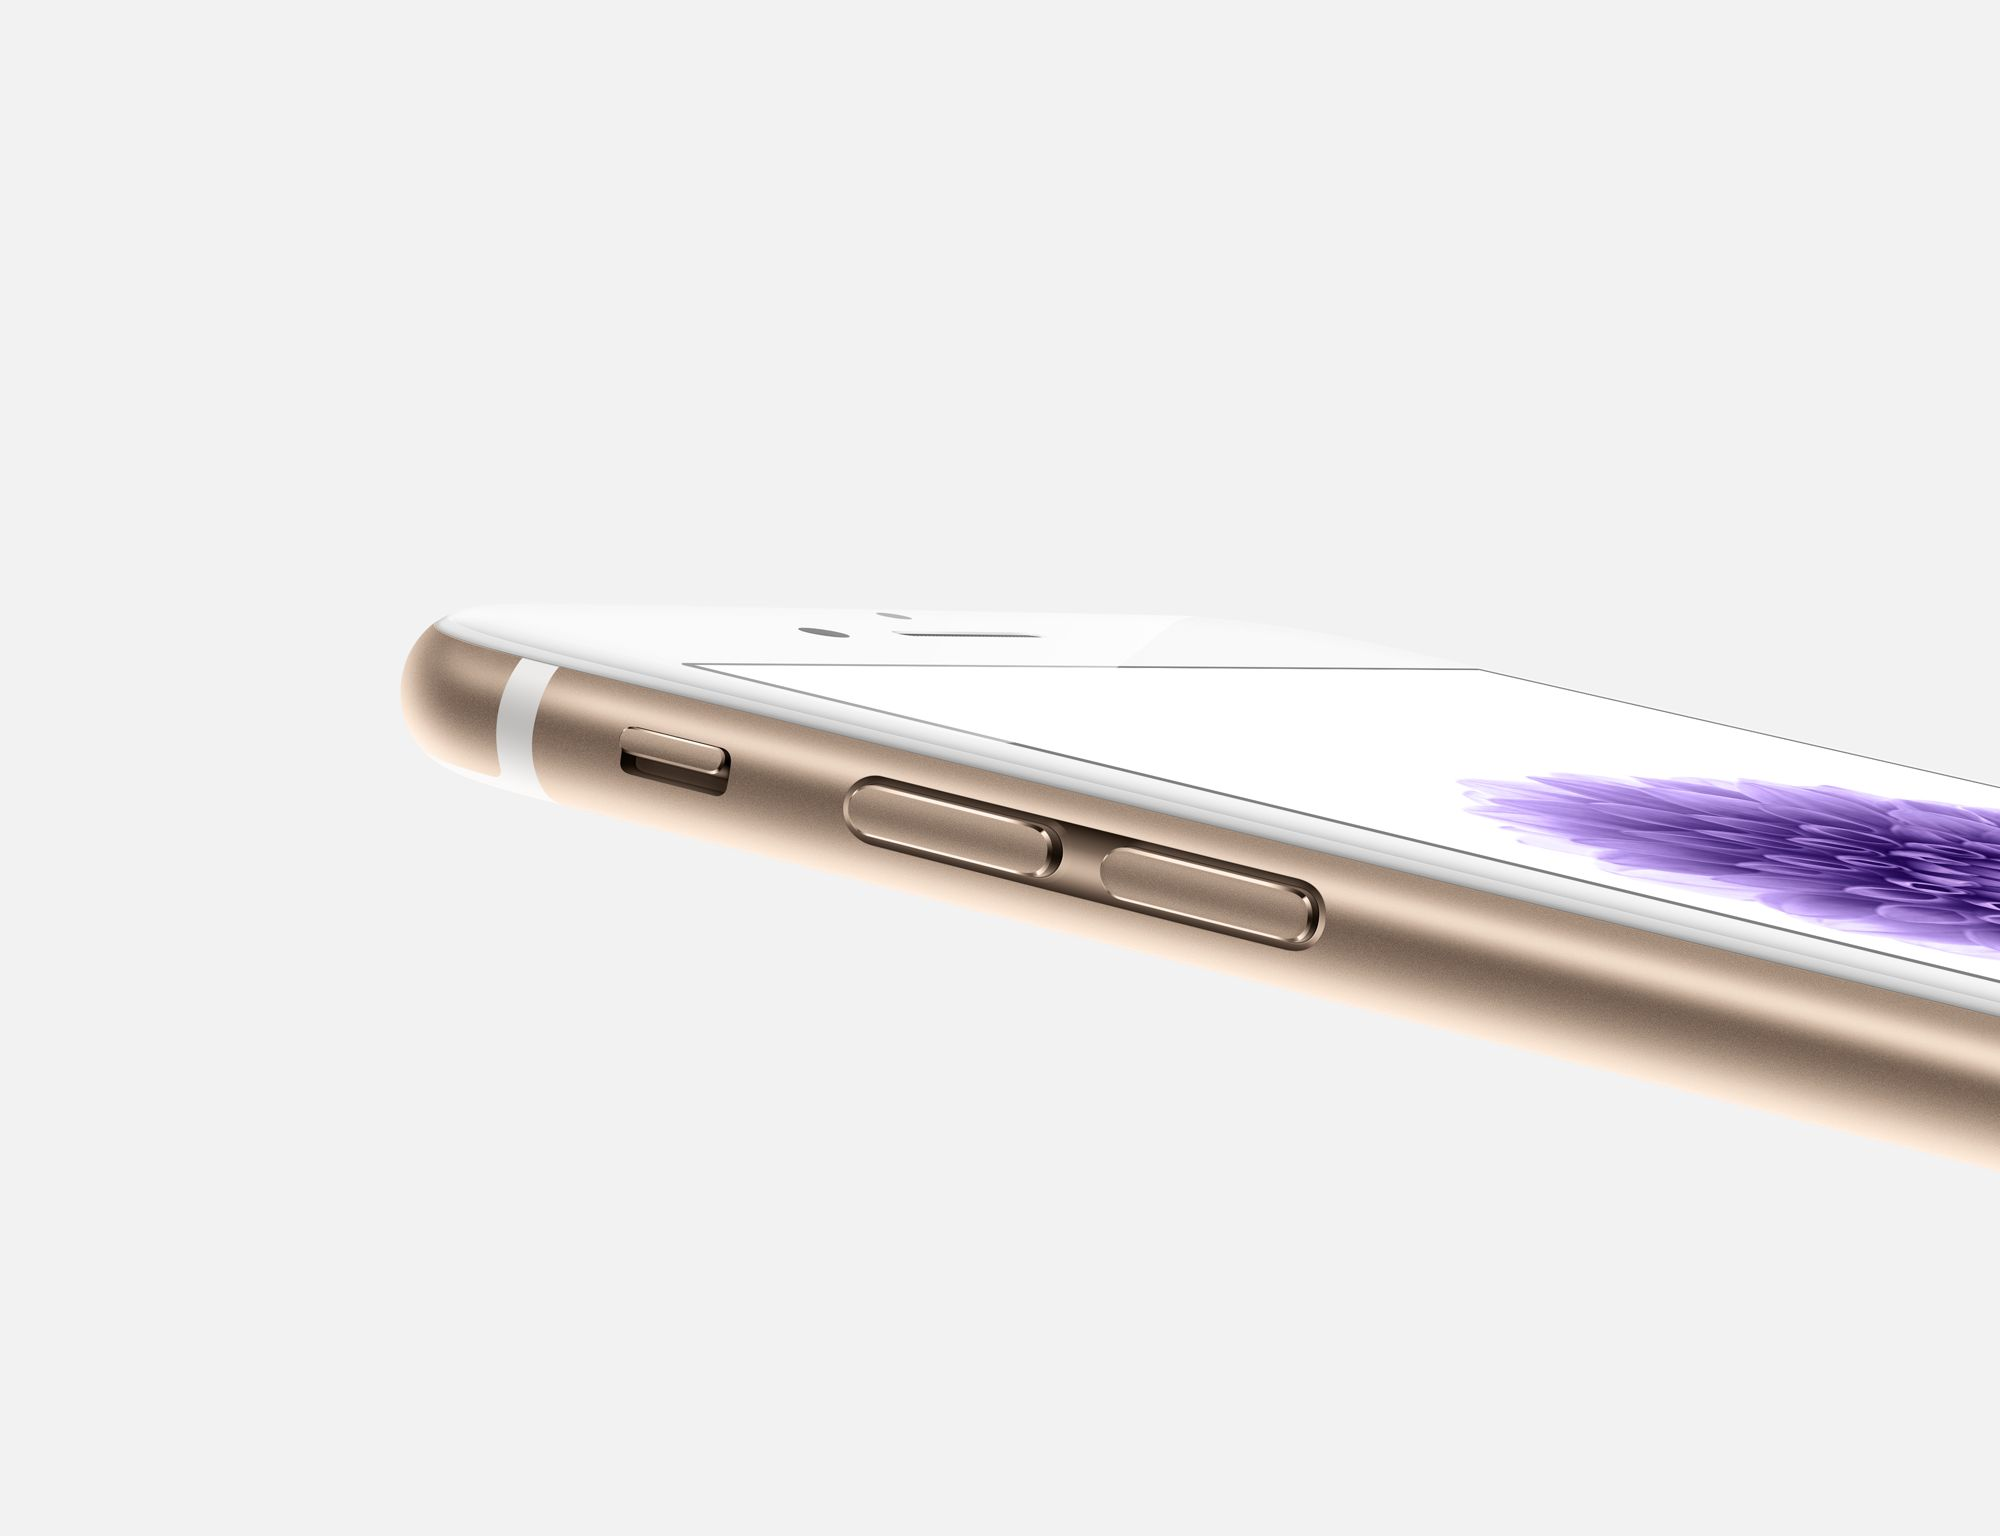 Krijgt iPhone 6s een 4K-display?